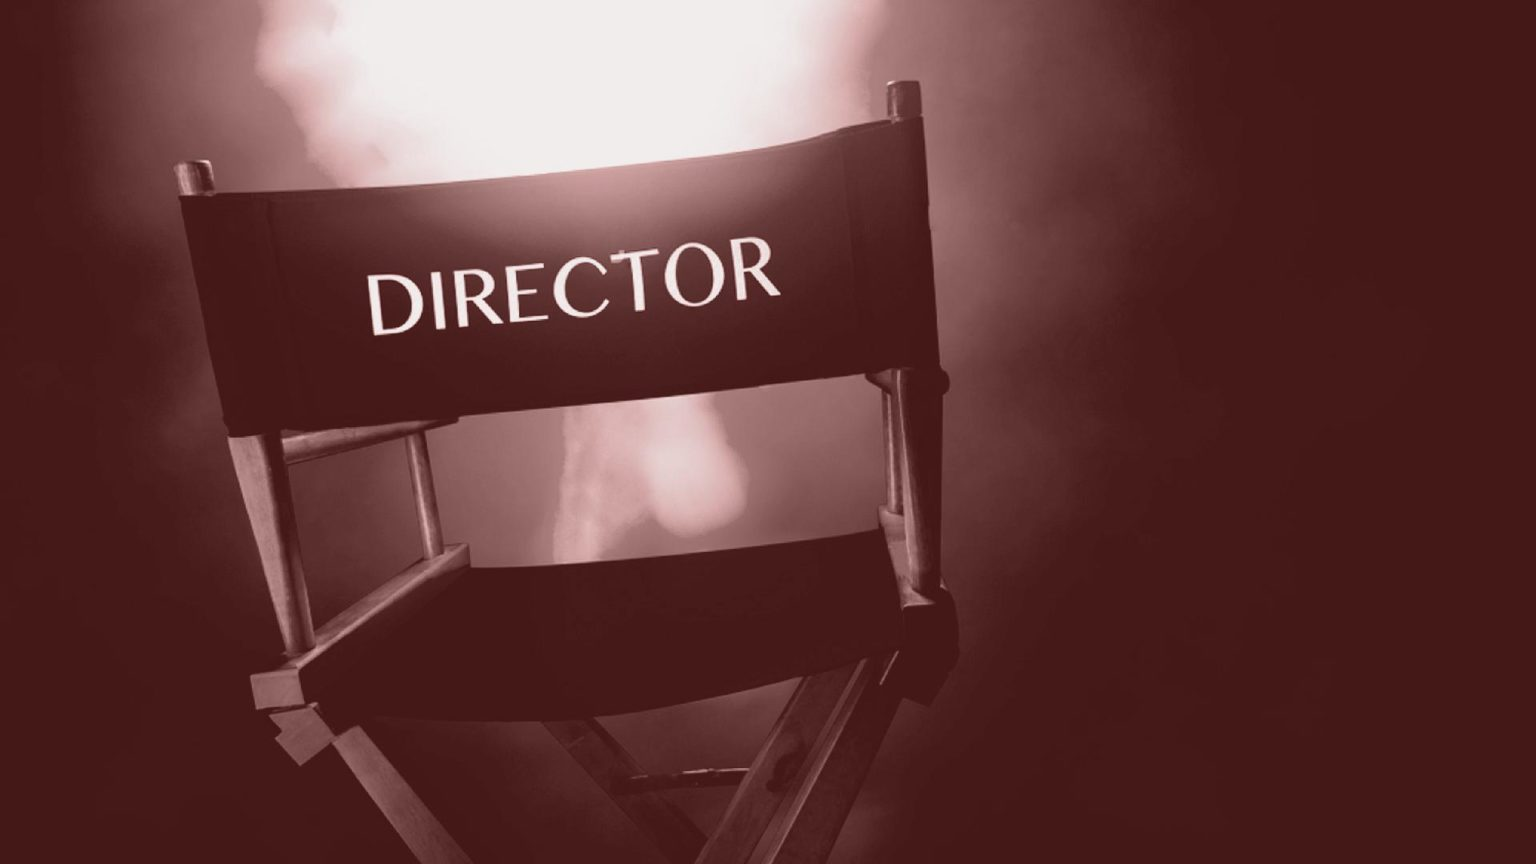 Directors-Chair-Black-and-White-retro